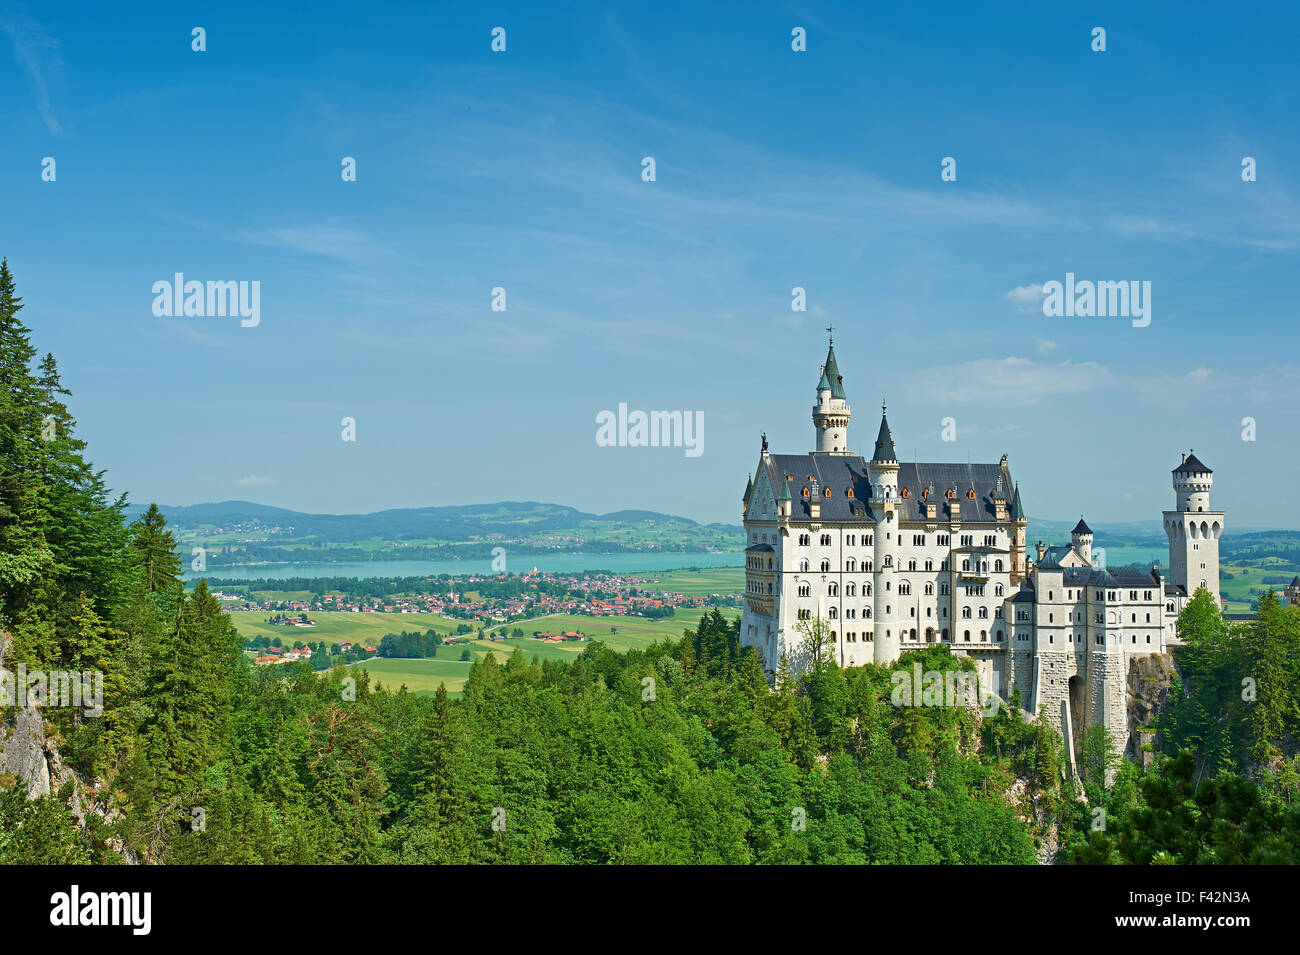 The castle of Neuschwanstein in Germany - Stock Image